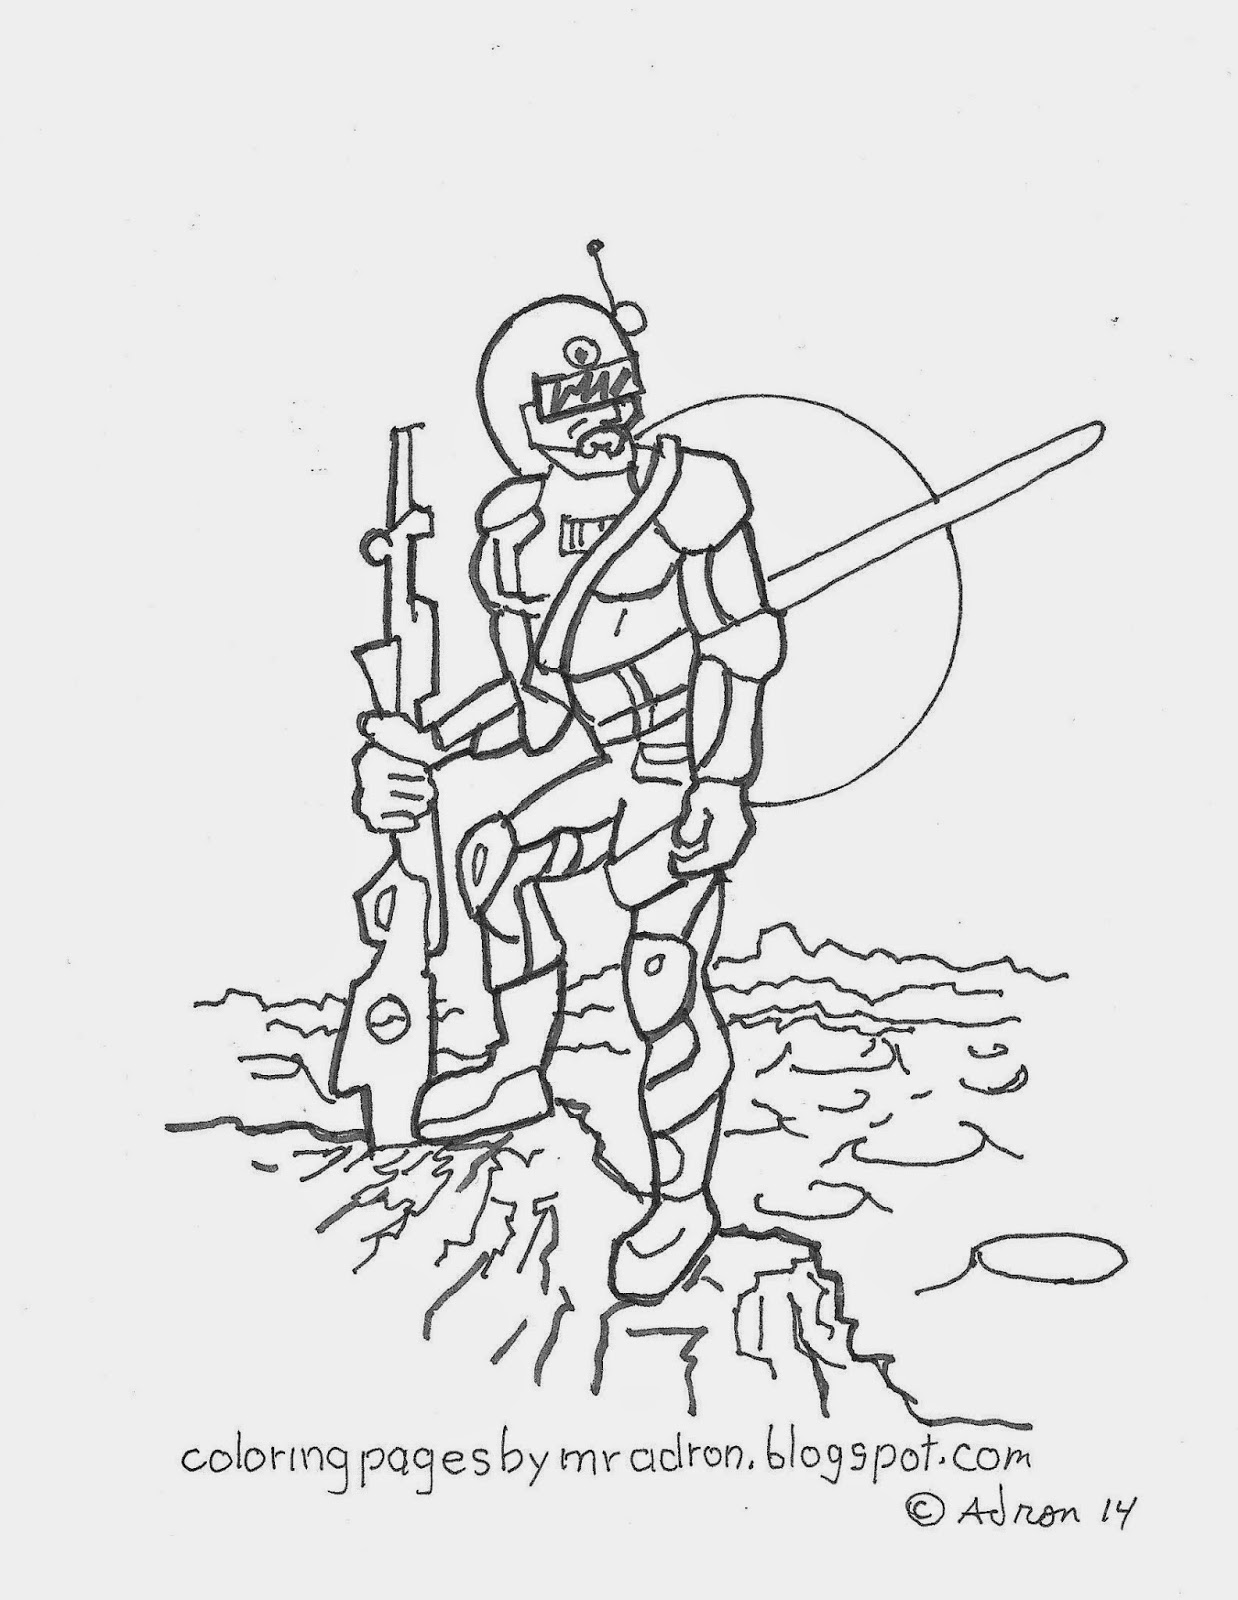 coloring pages for kids by mr adron 2014